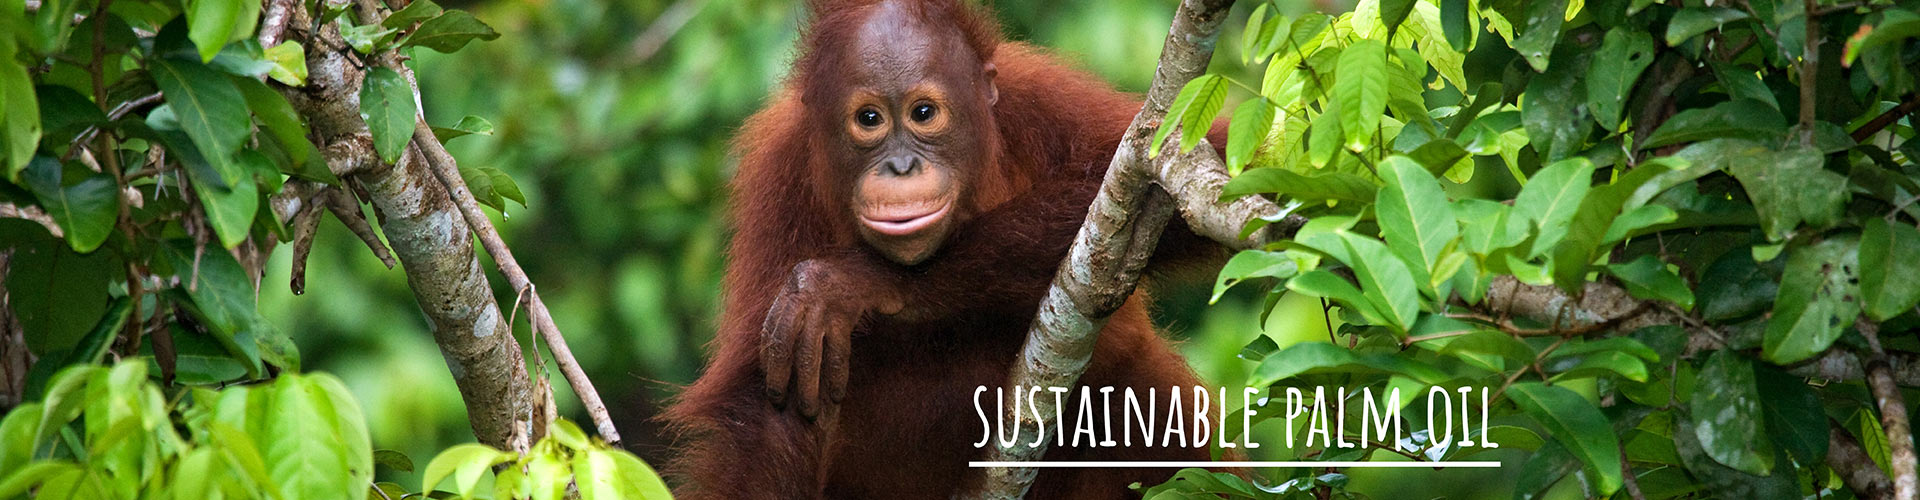 Toronto Zoo Palm Oil Statement